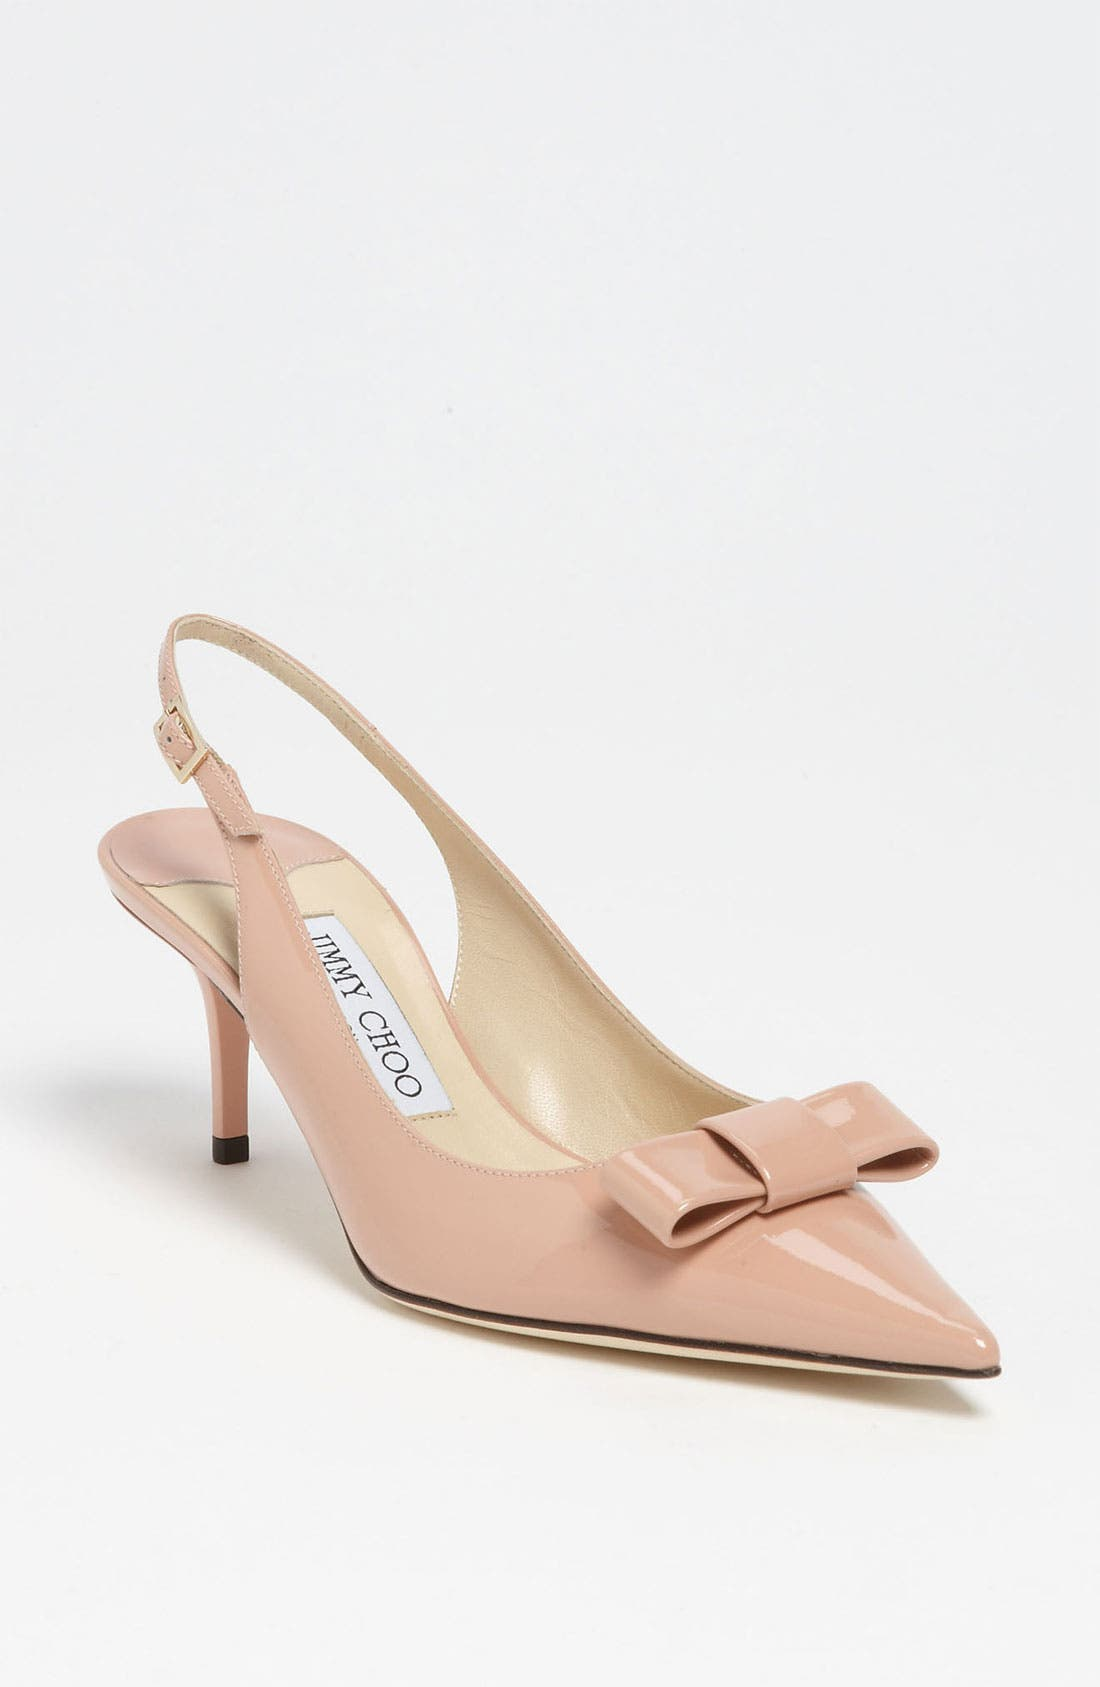 Alternate Image 1 Selected - Jimmy Choo 'Mara' Pump (Nordstrom Exclusive)